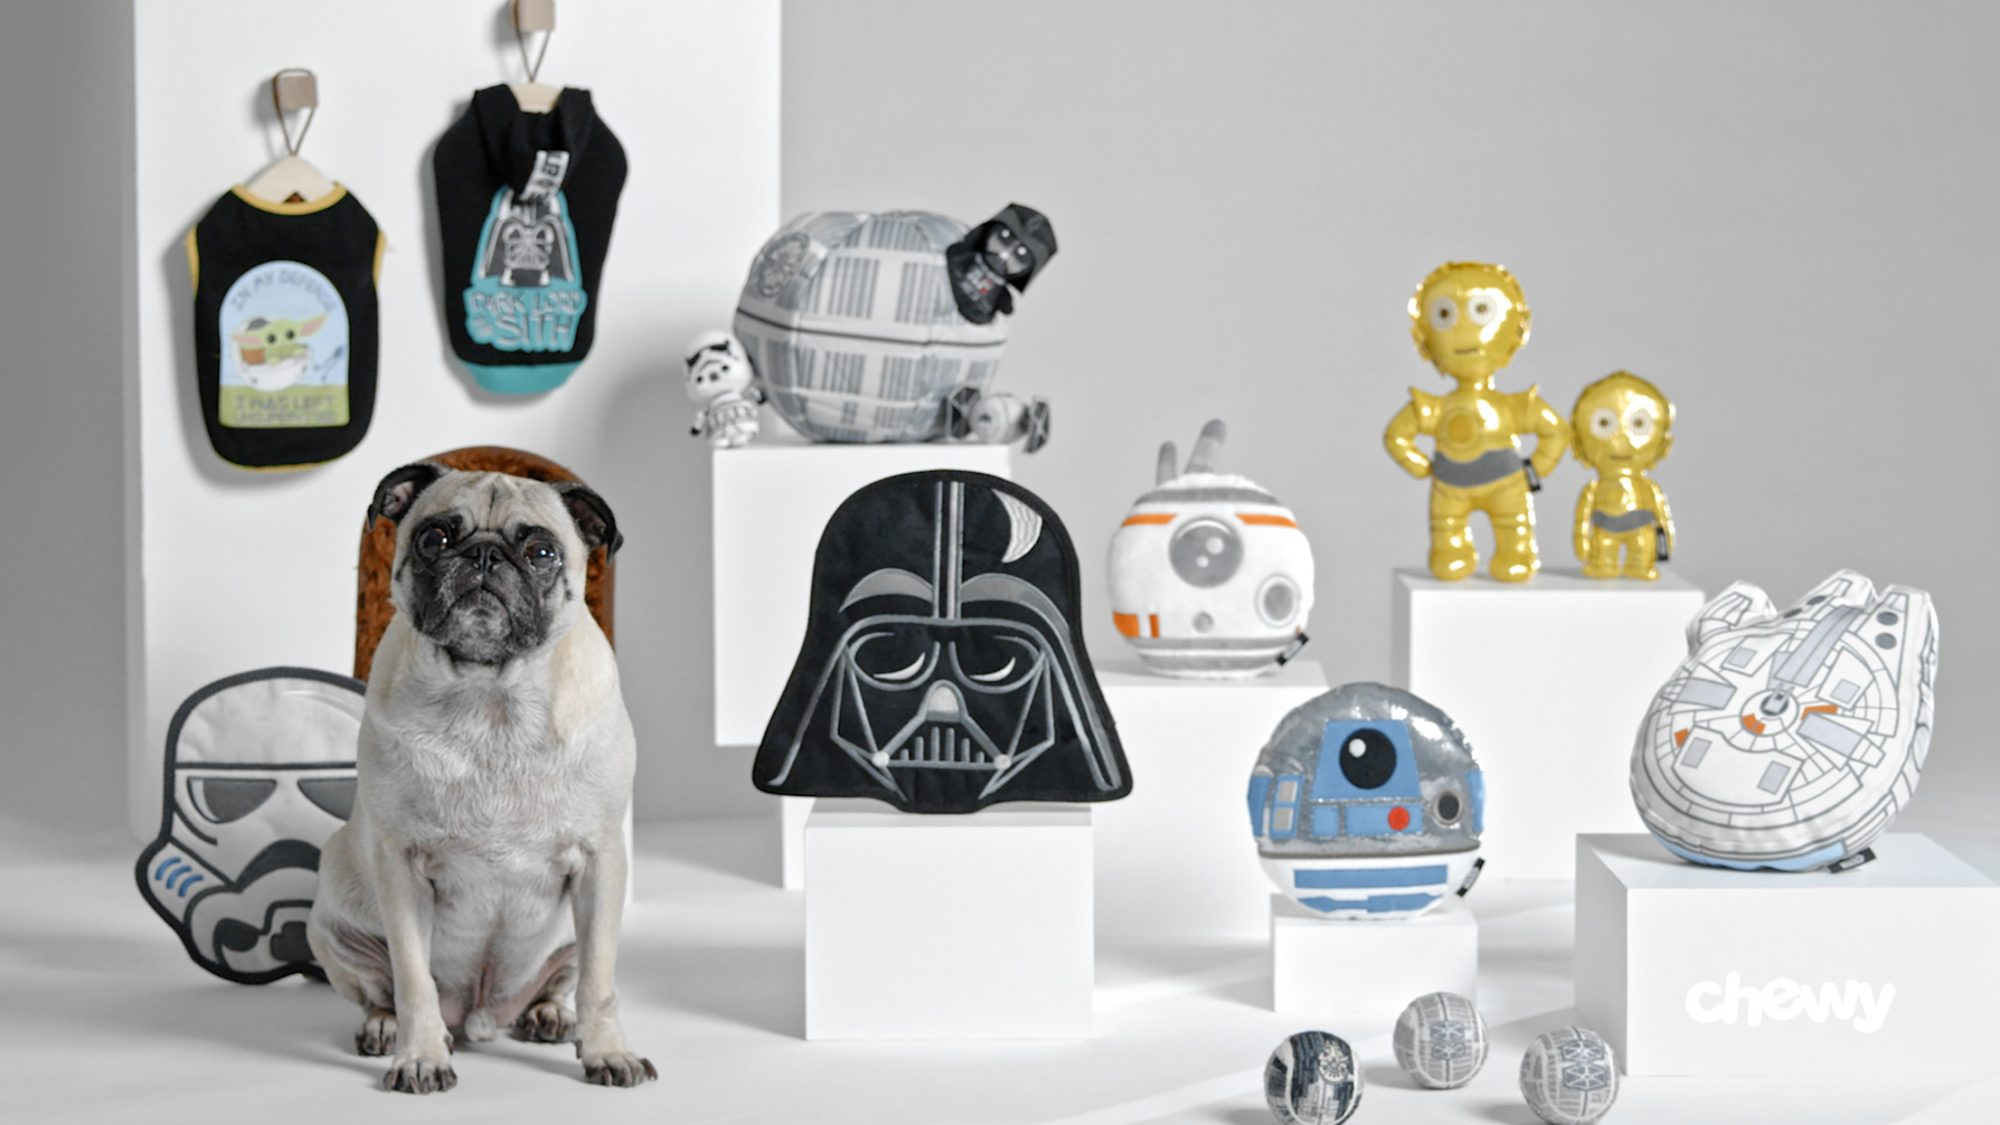 star wars collection at Chewy